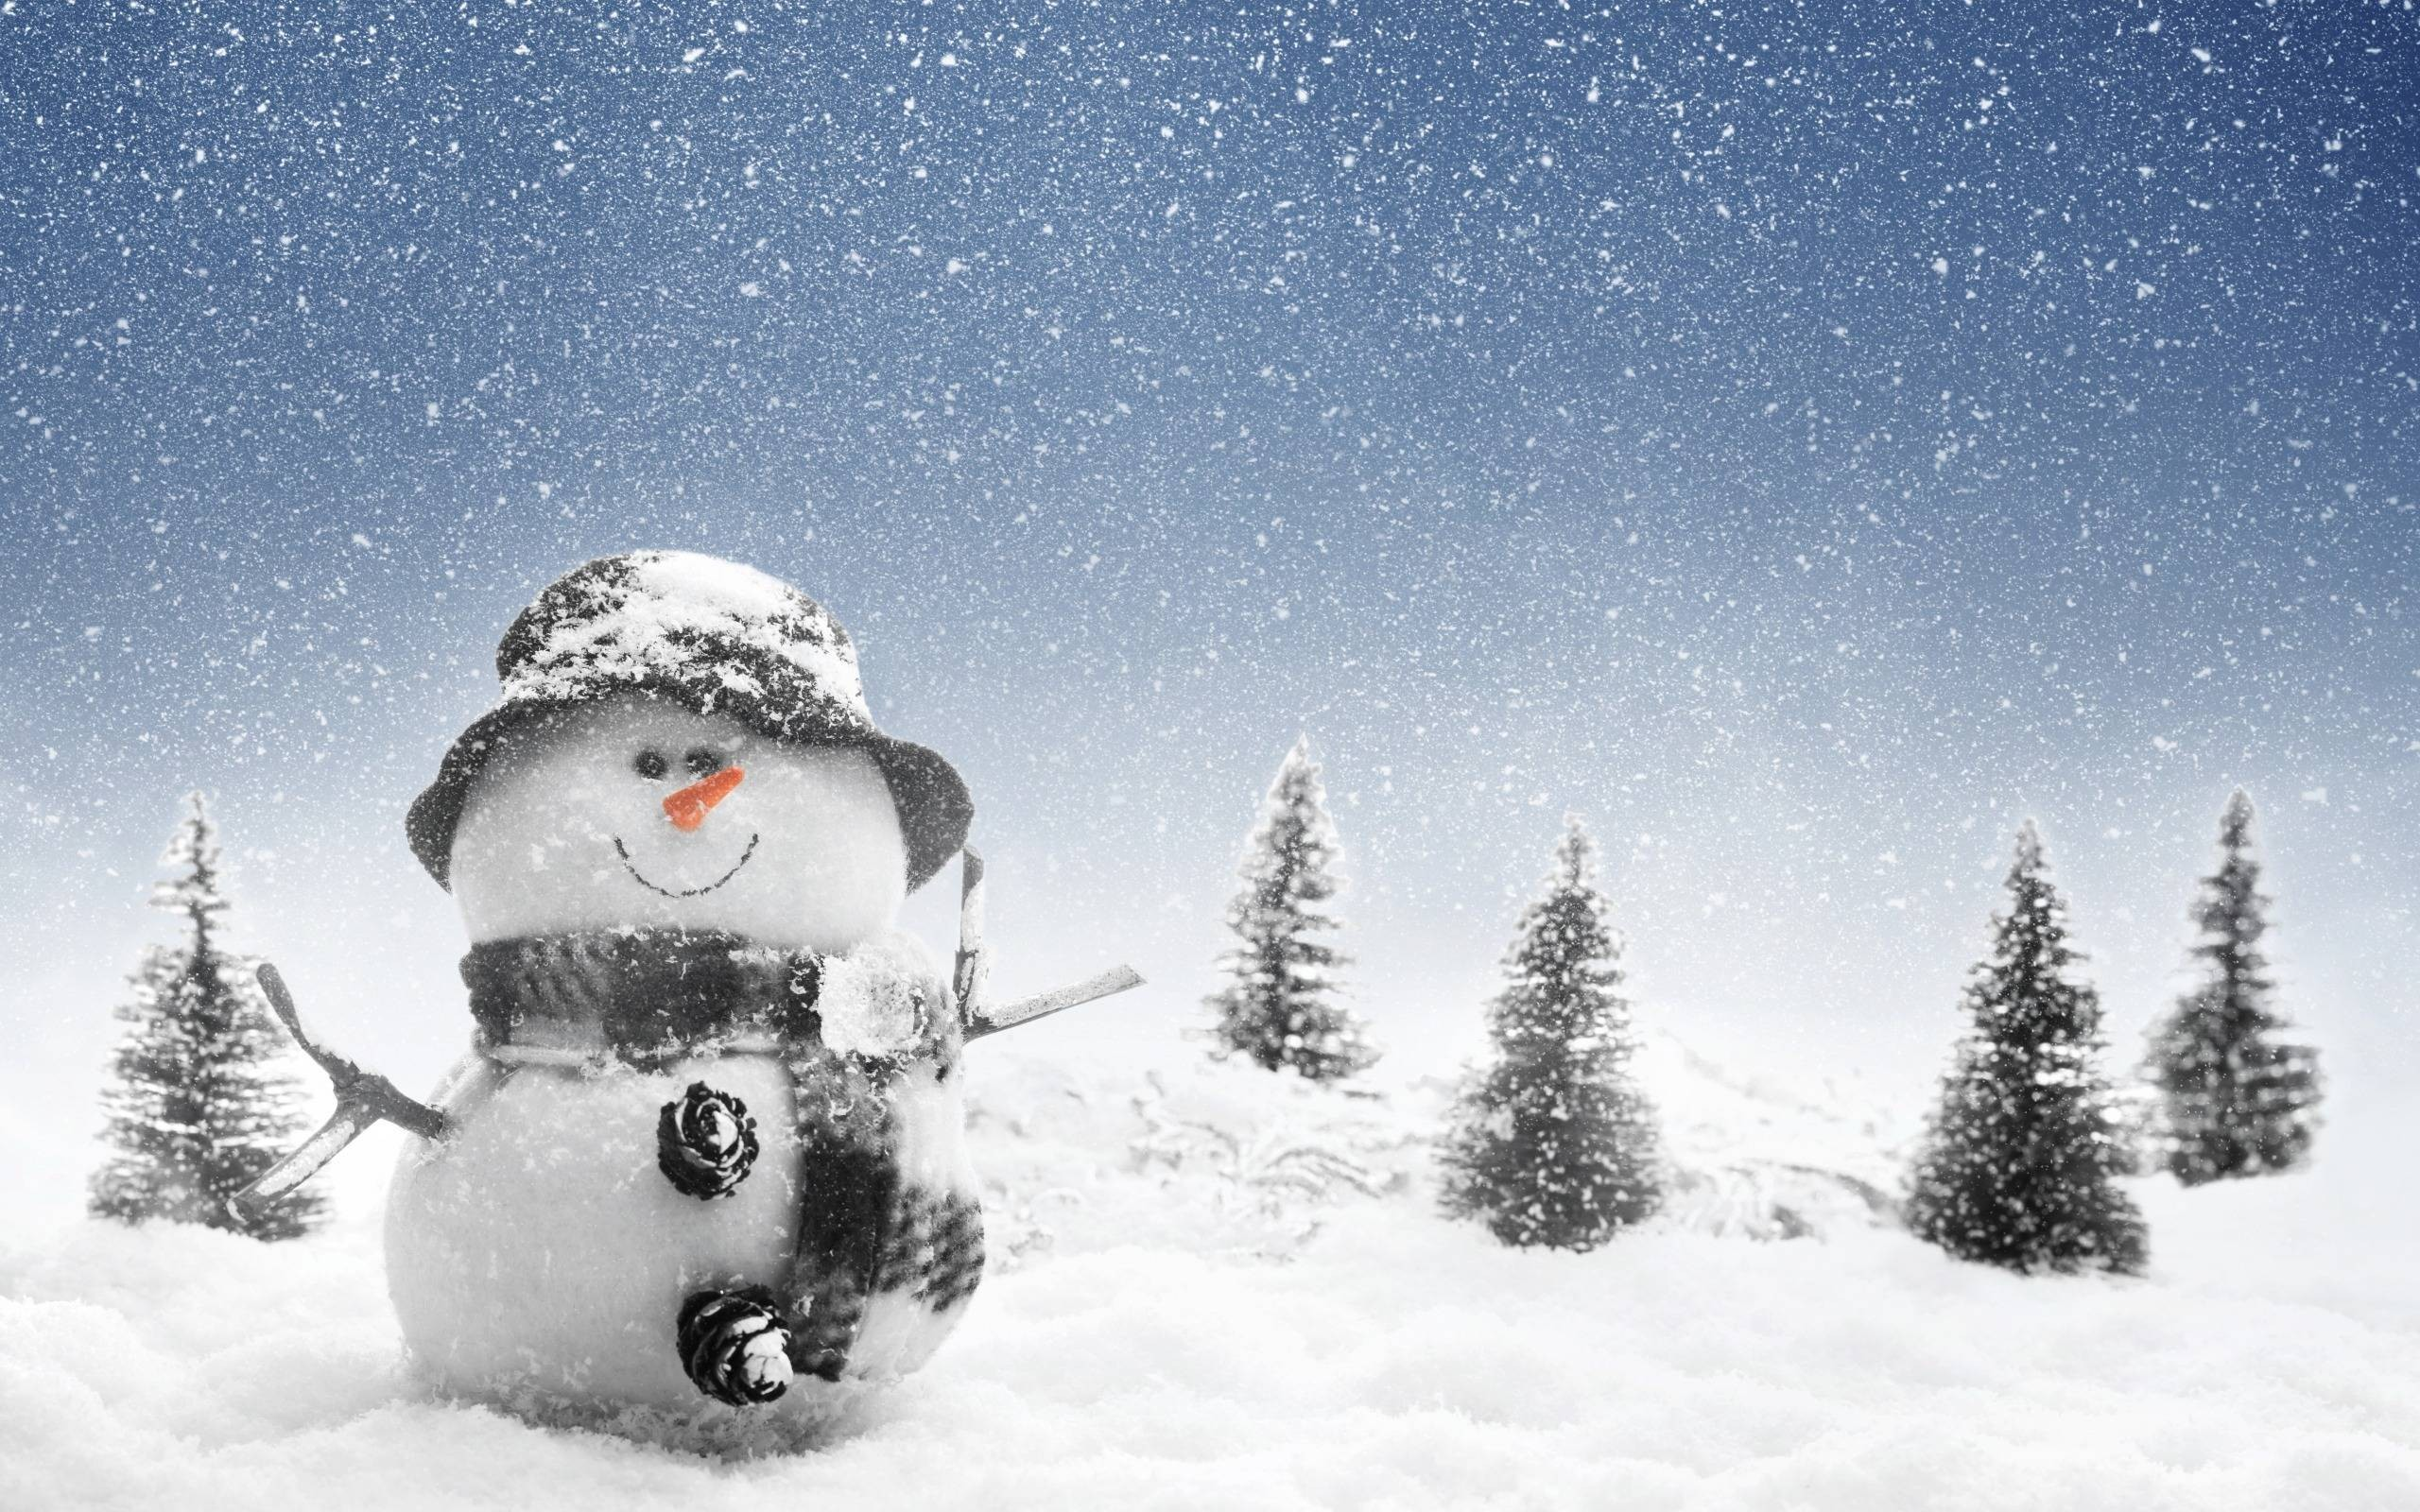 Snowman Wallpaper 1 Download Free Stunning Backgrounds For Desktop